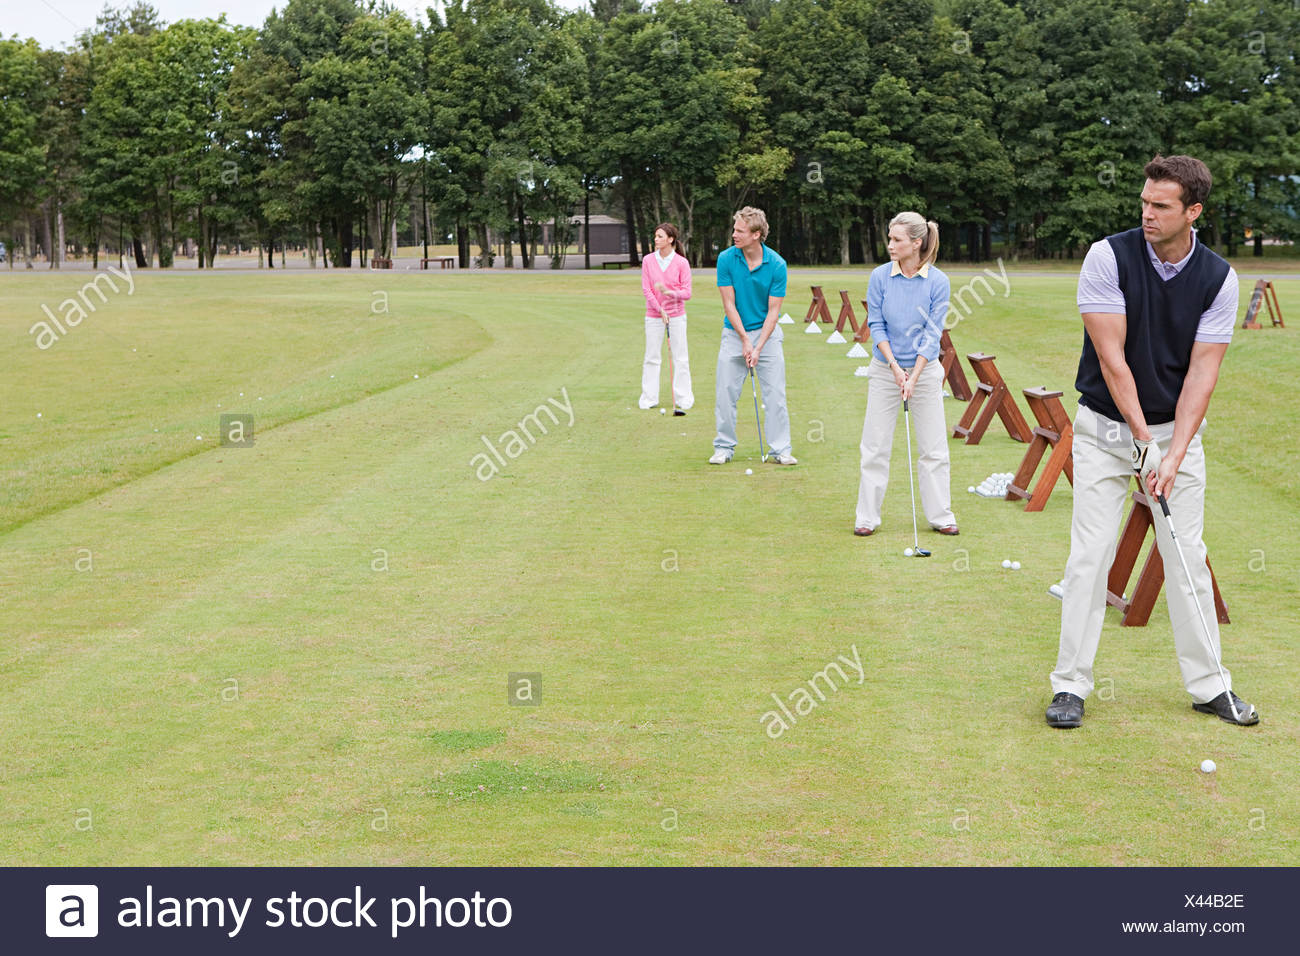 Four golfers on a driving range - Stock Image